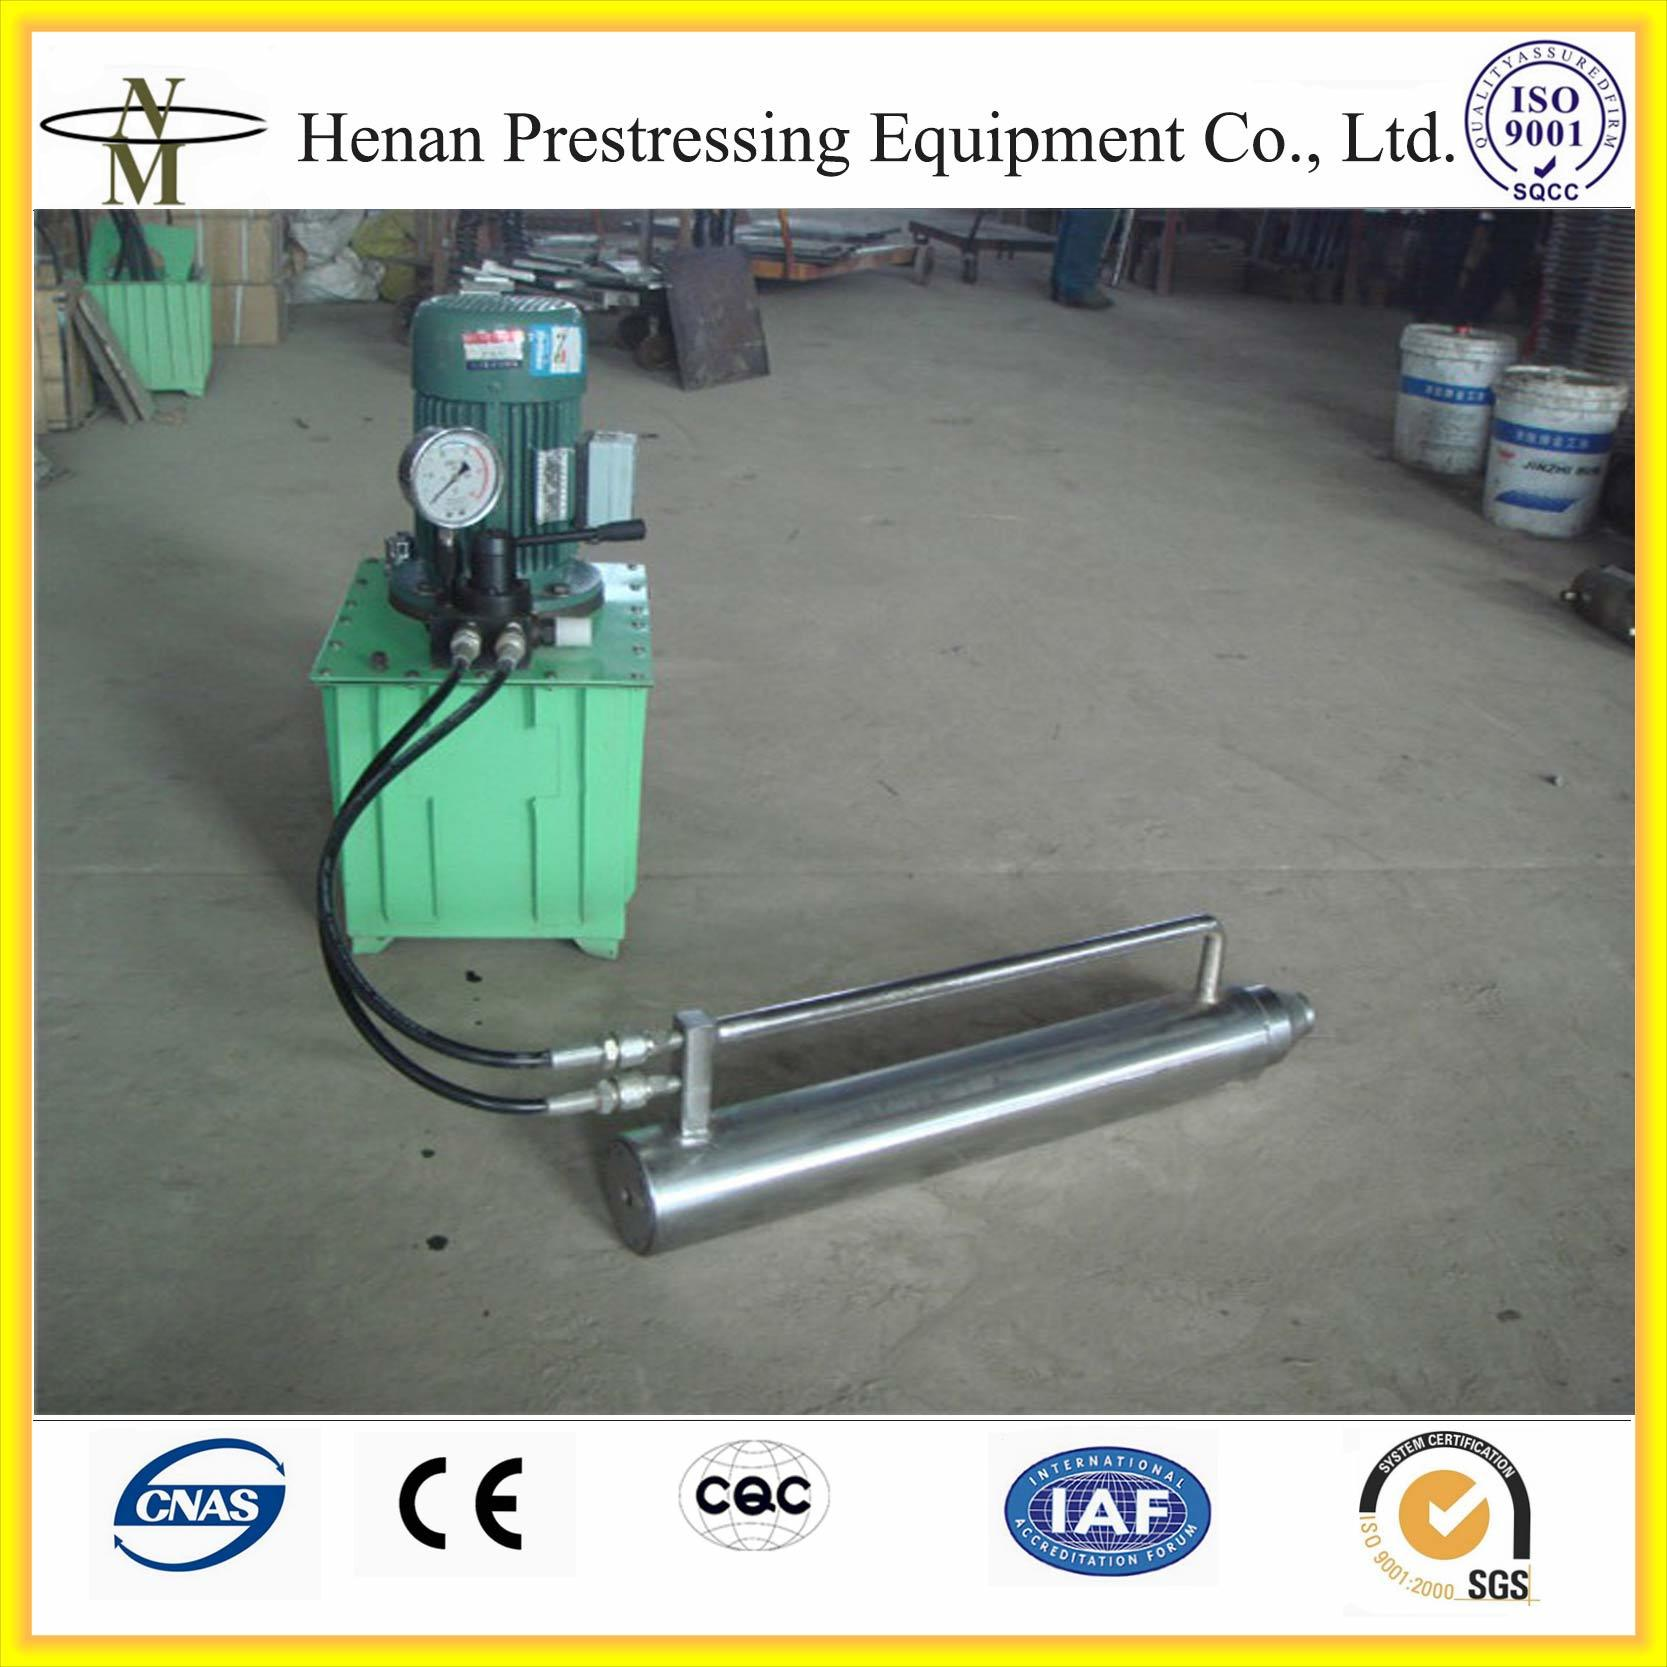 China Cnm-Zlj Steel Wire Pulling Machine for Prestressed Concrete ...